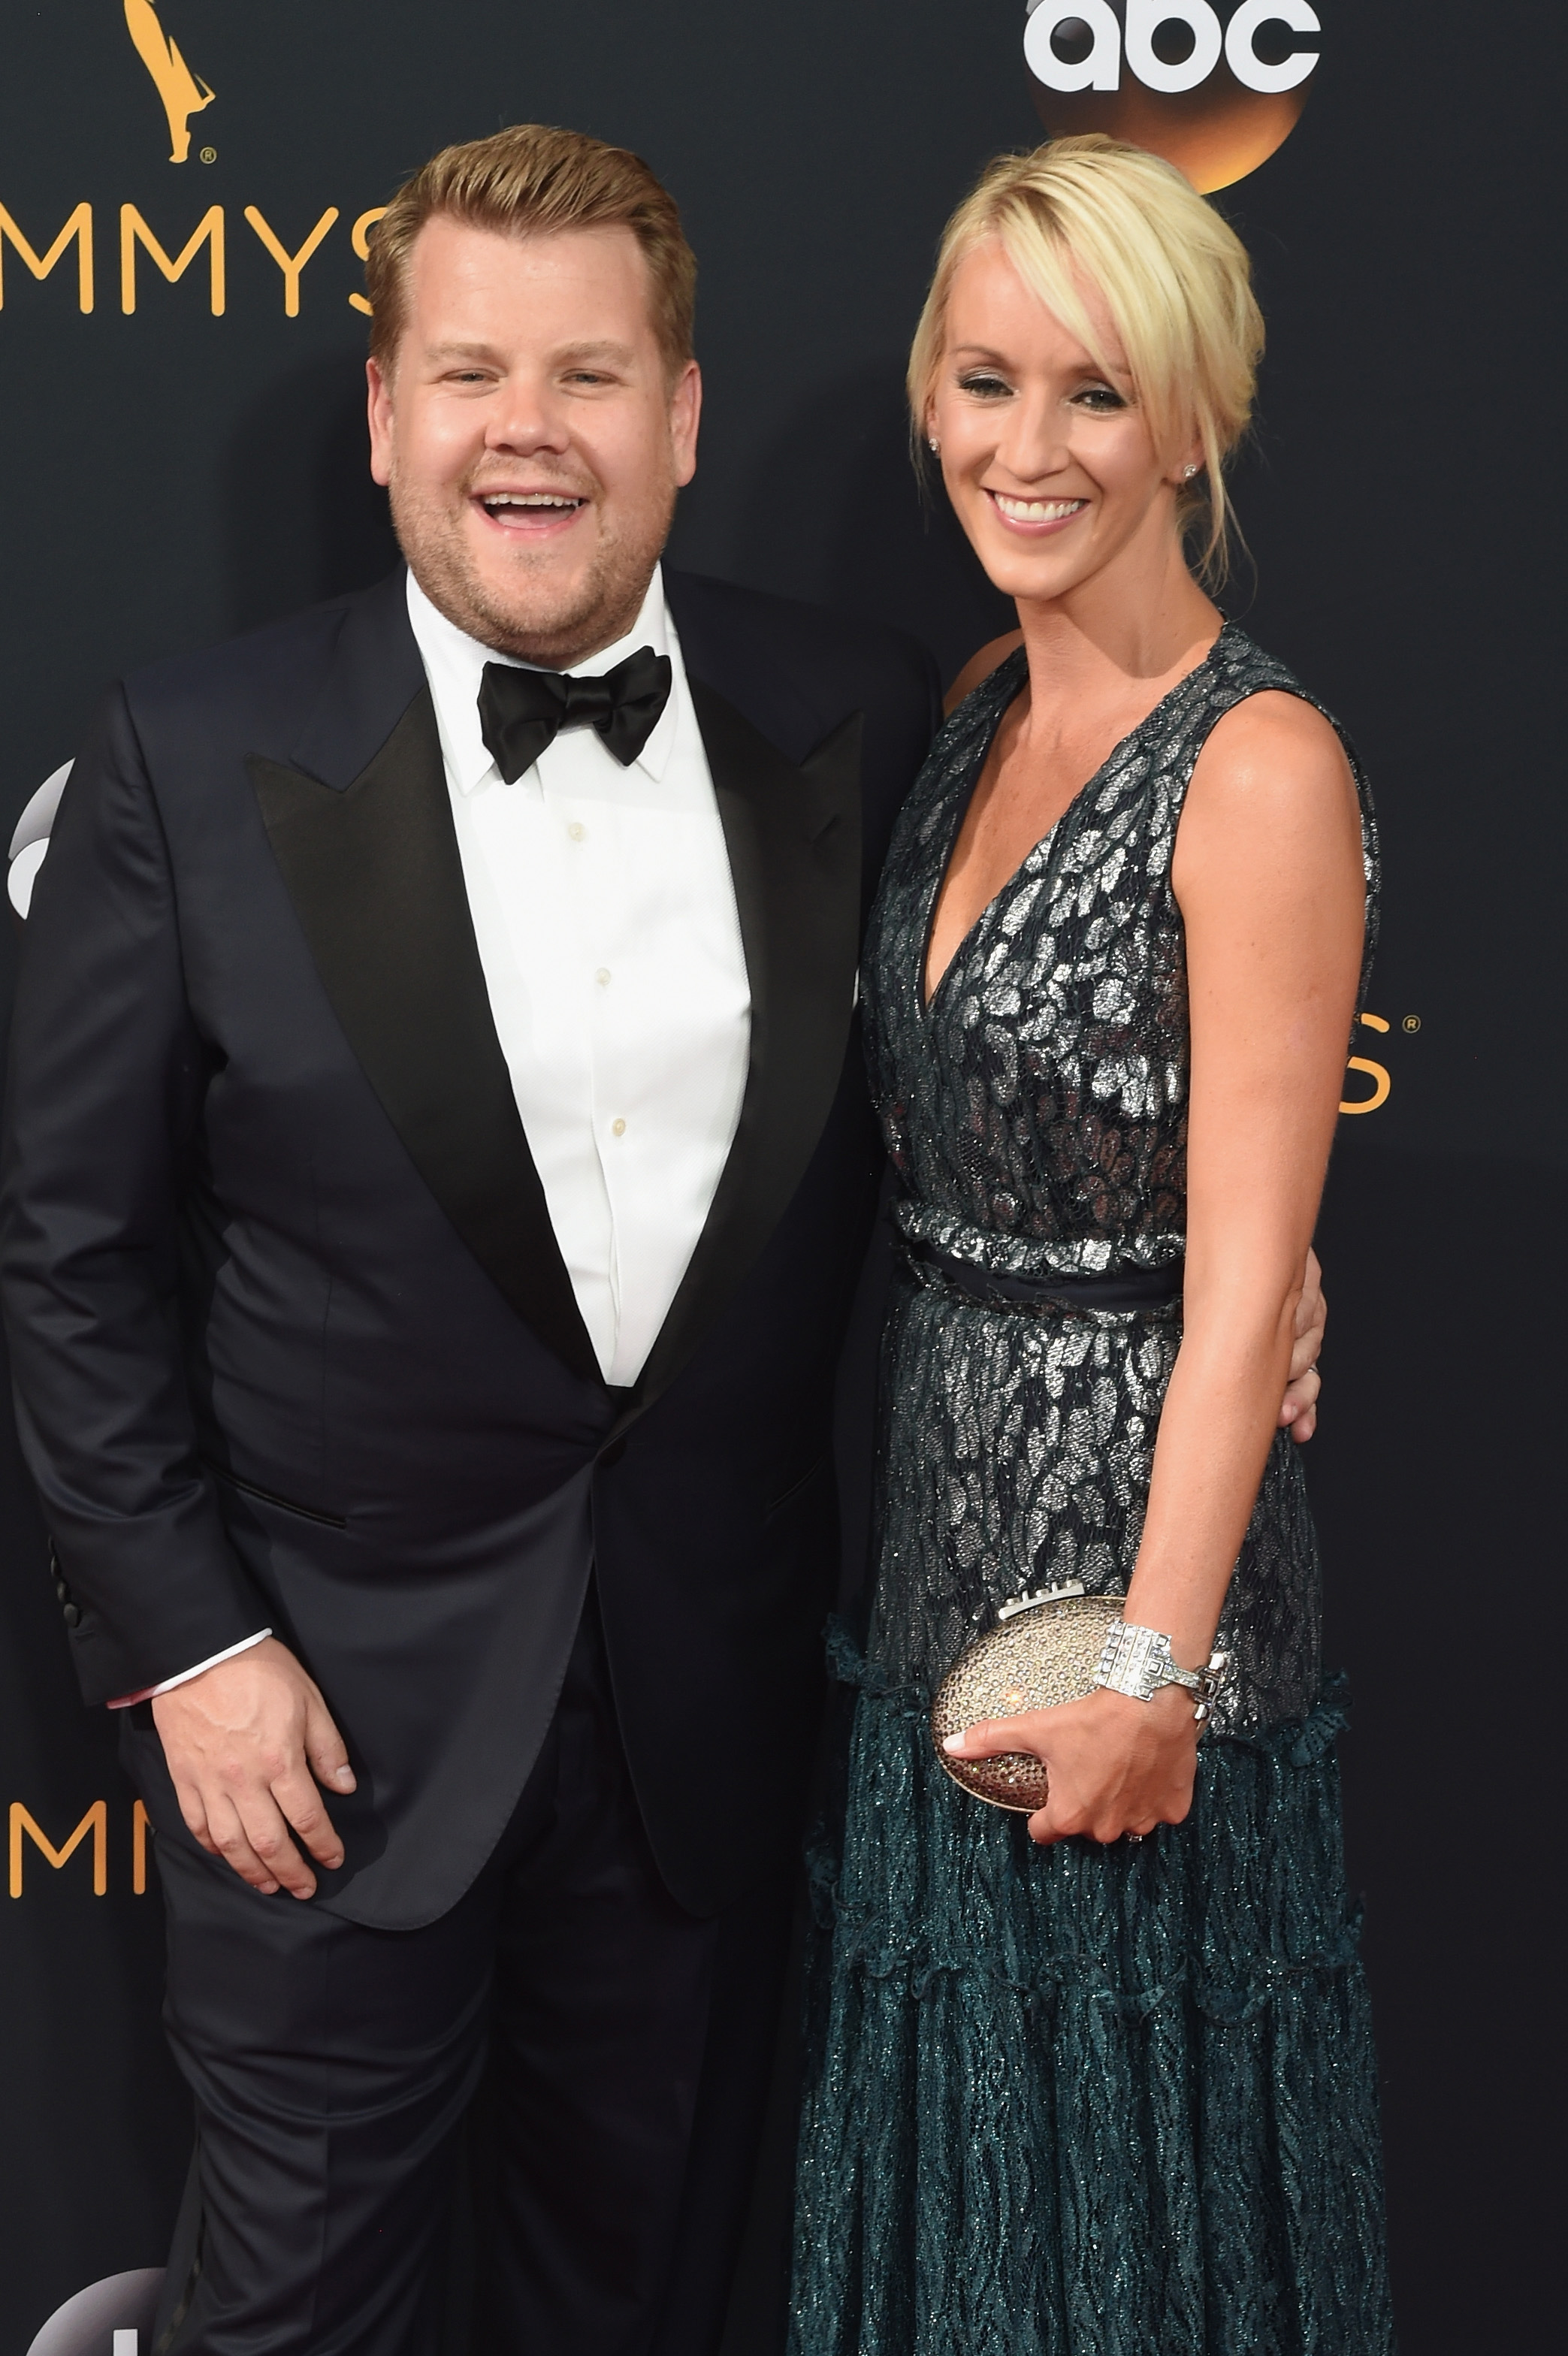 James Corden and Julie Carey